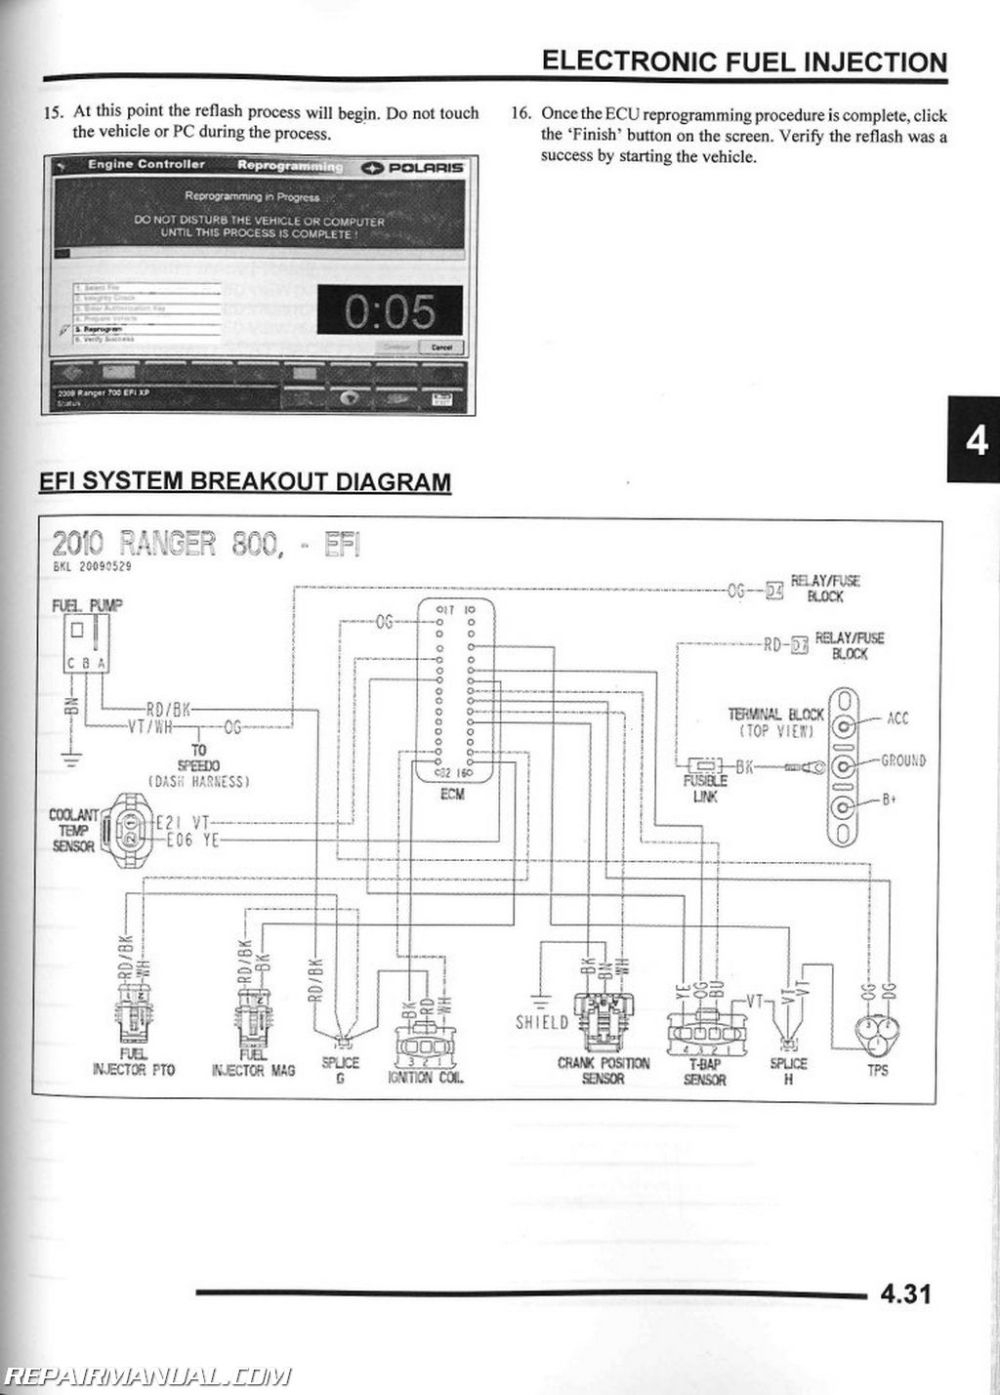 medium resolution of wiring diagram for polaris ranger 800 xp simple wiring schema rzr 800 steering diagram 1999 polaris